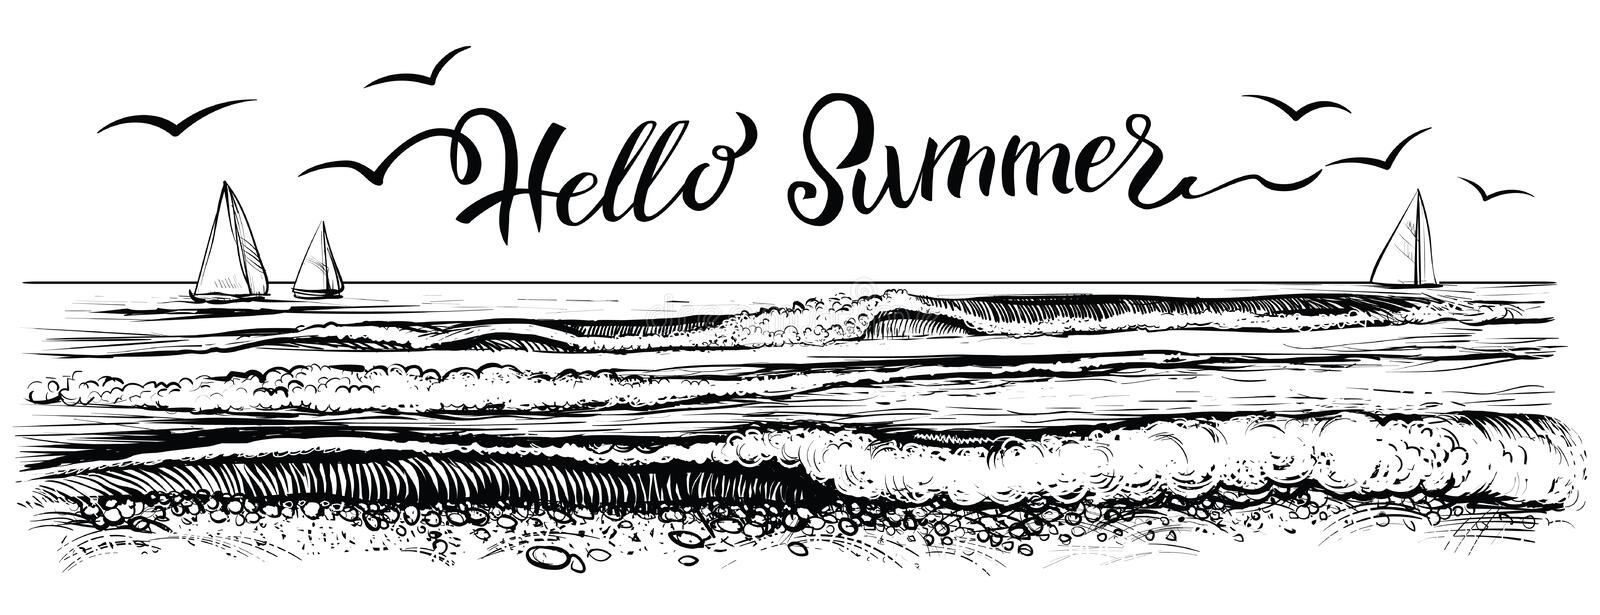 Hello summer, lettering with panoramic view of ocean or sea waves and yachts. Vector illustration. stock illustration